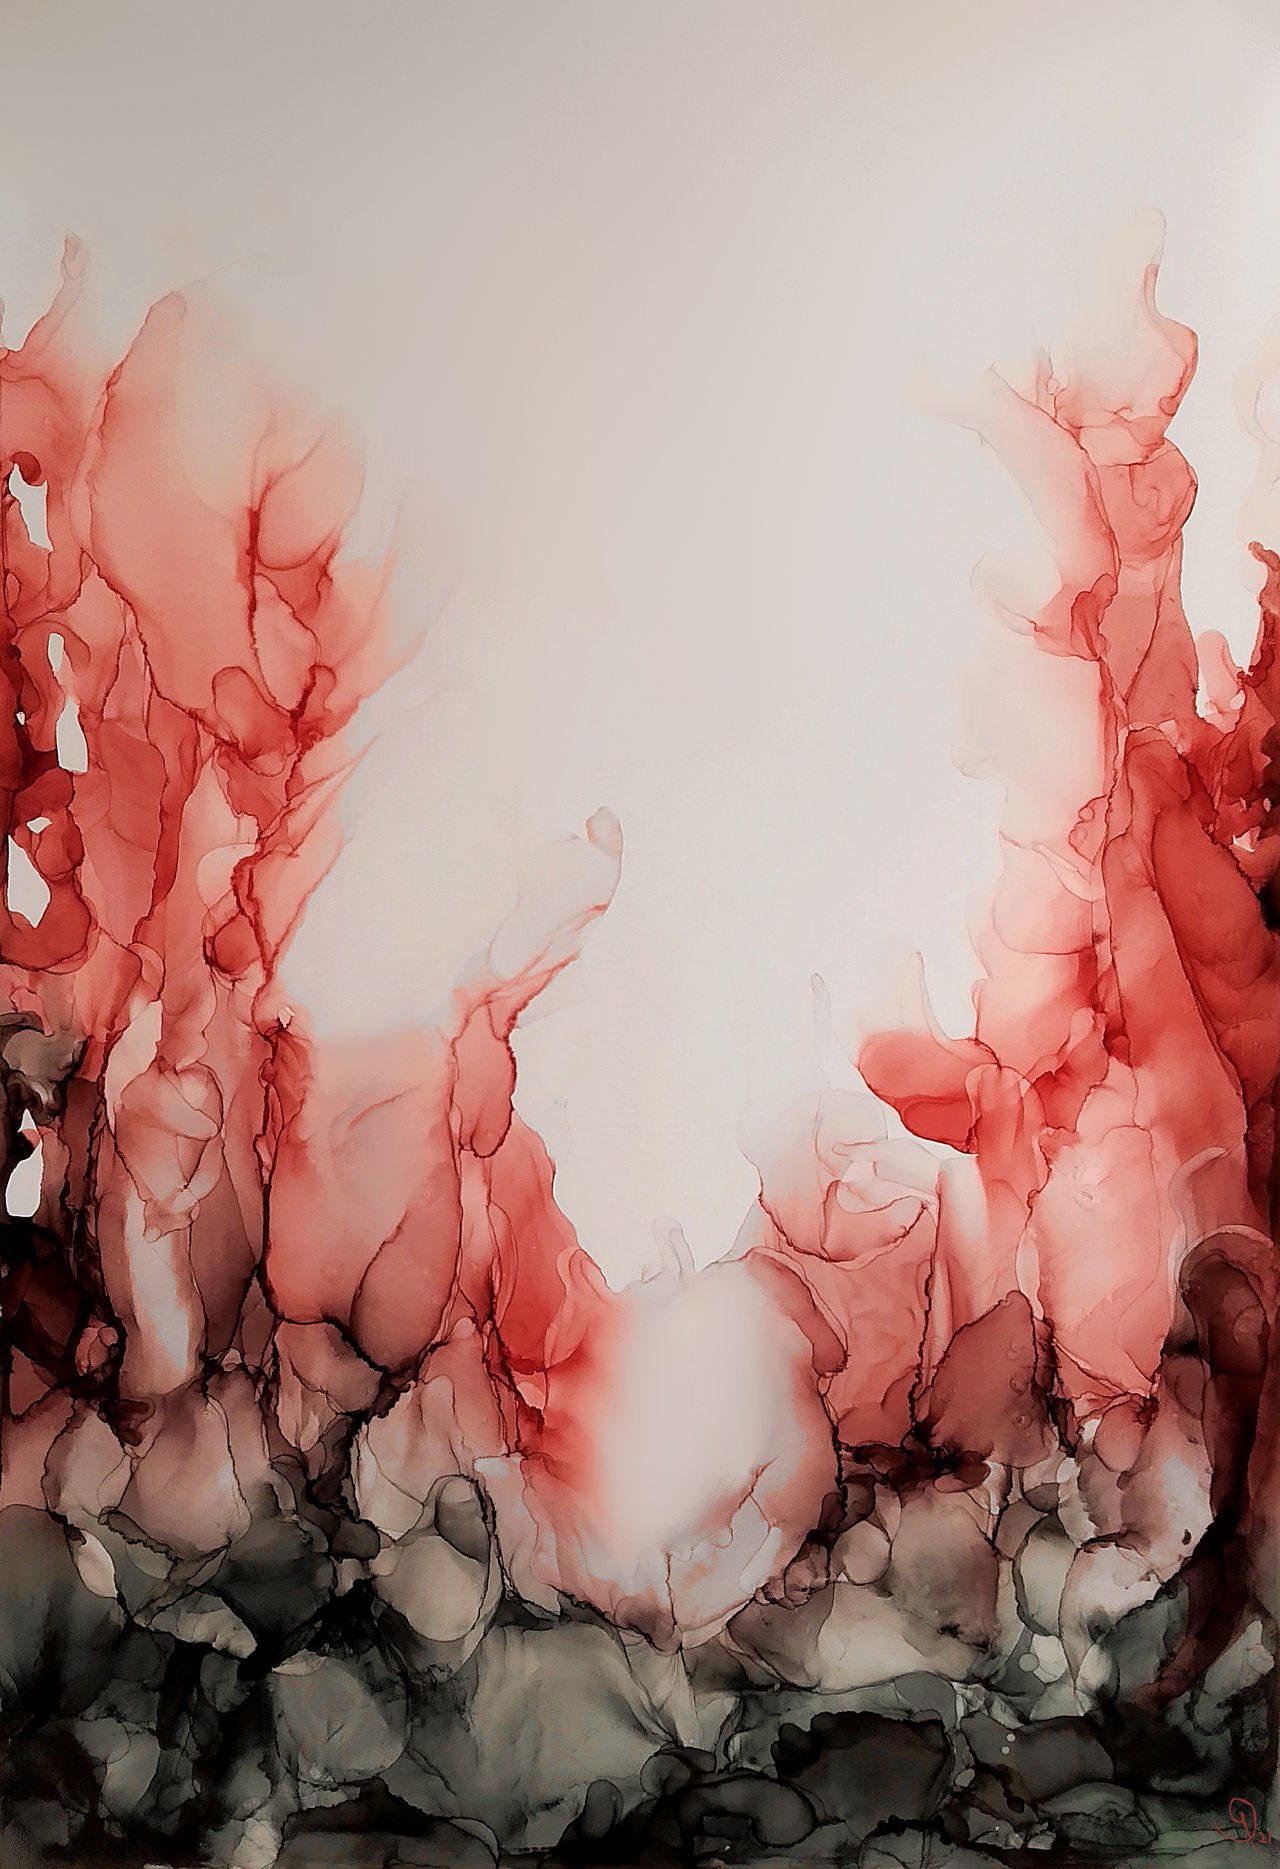 Abstract Alcohol Ink #3